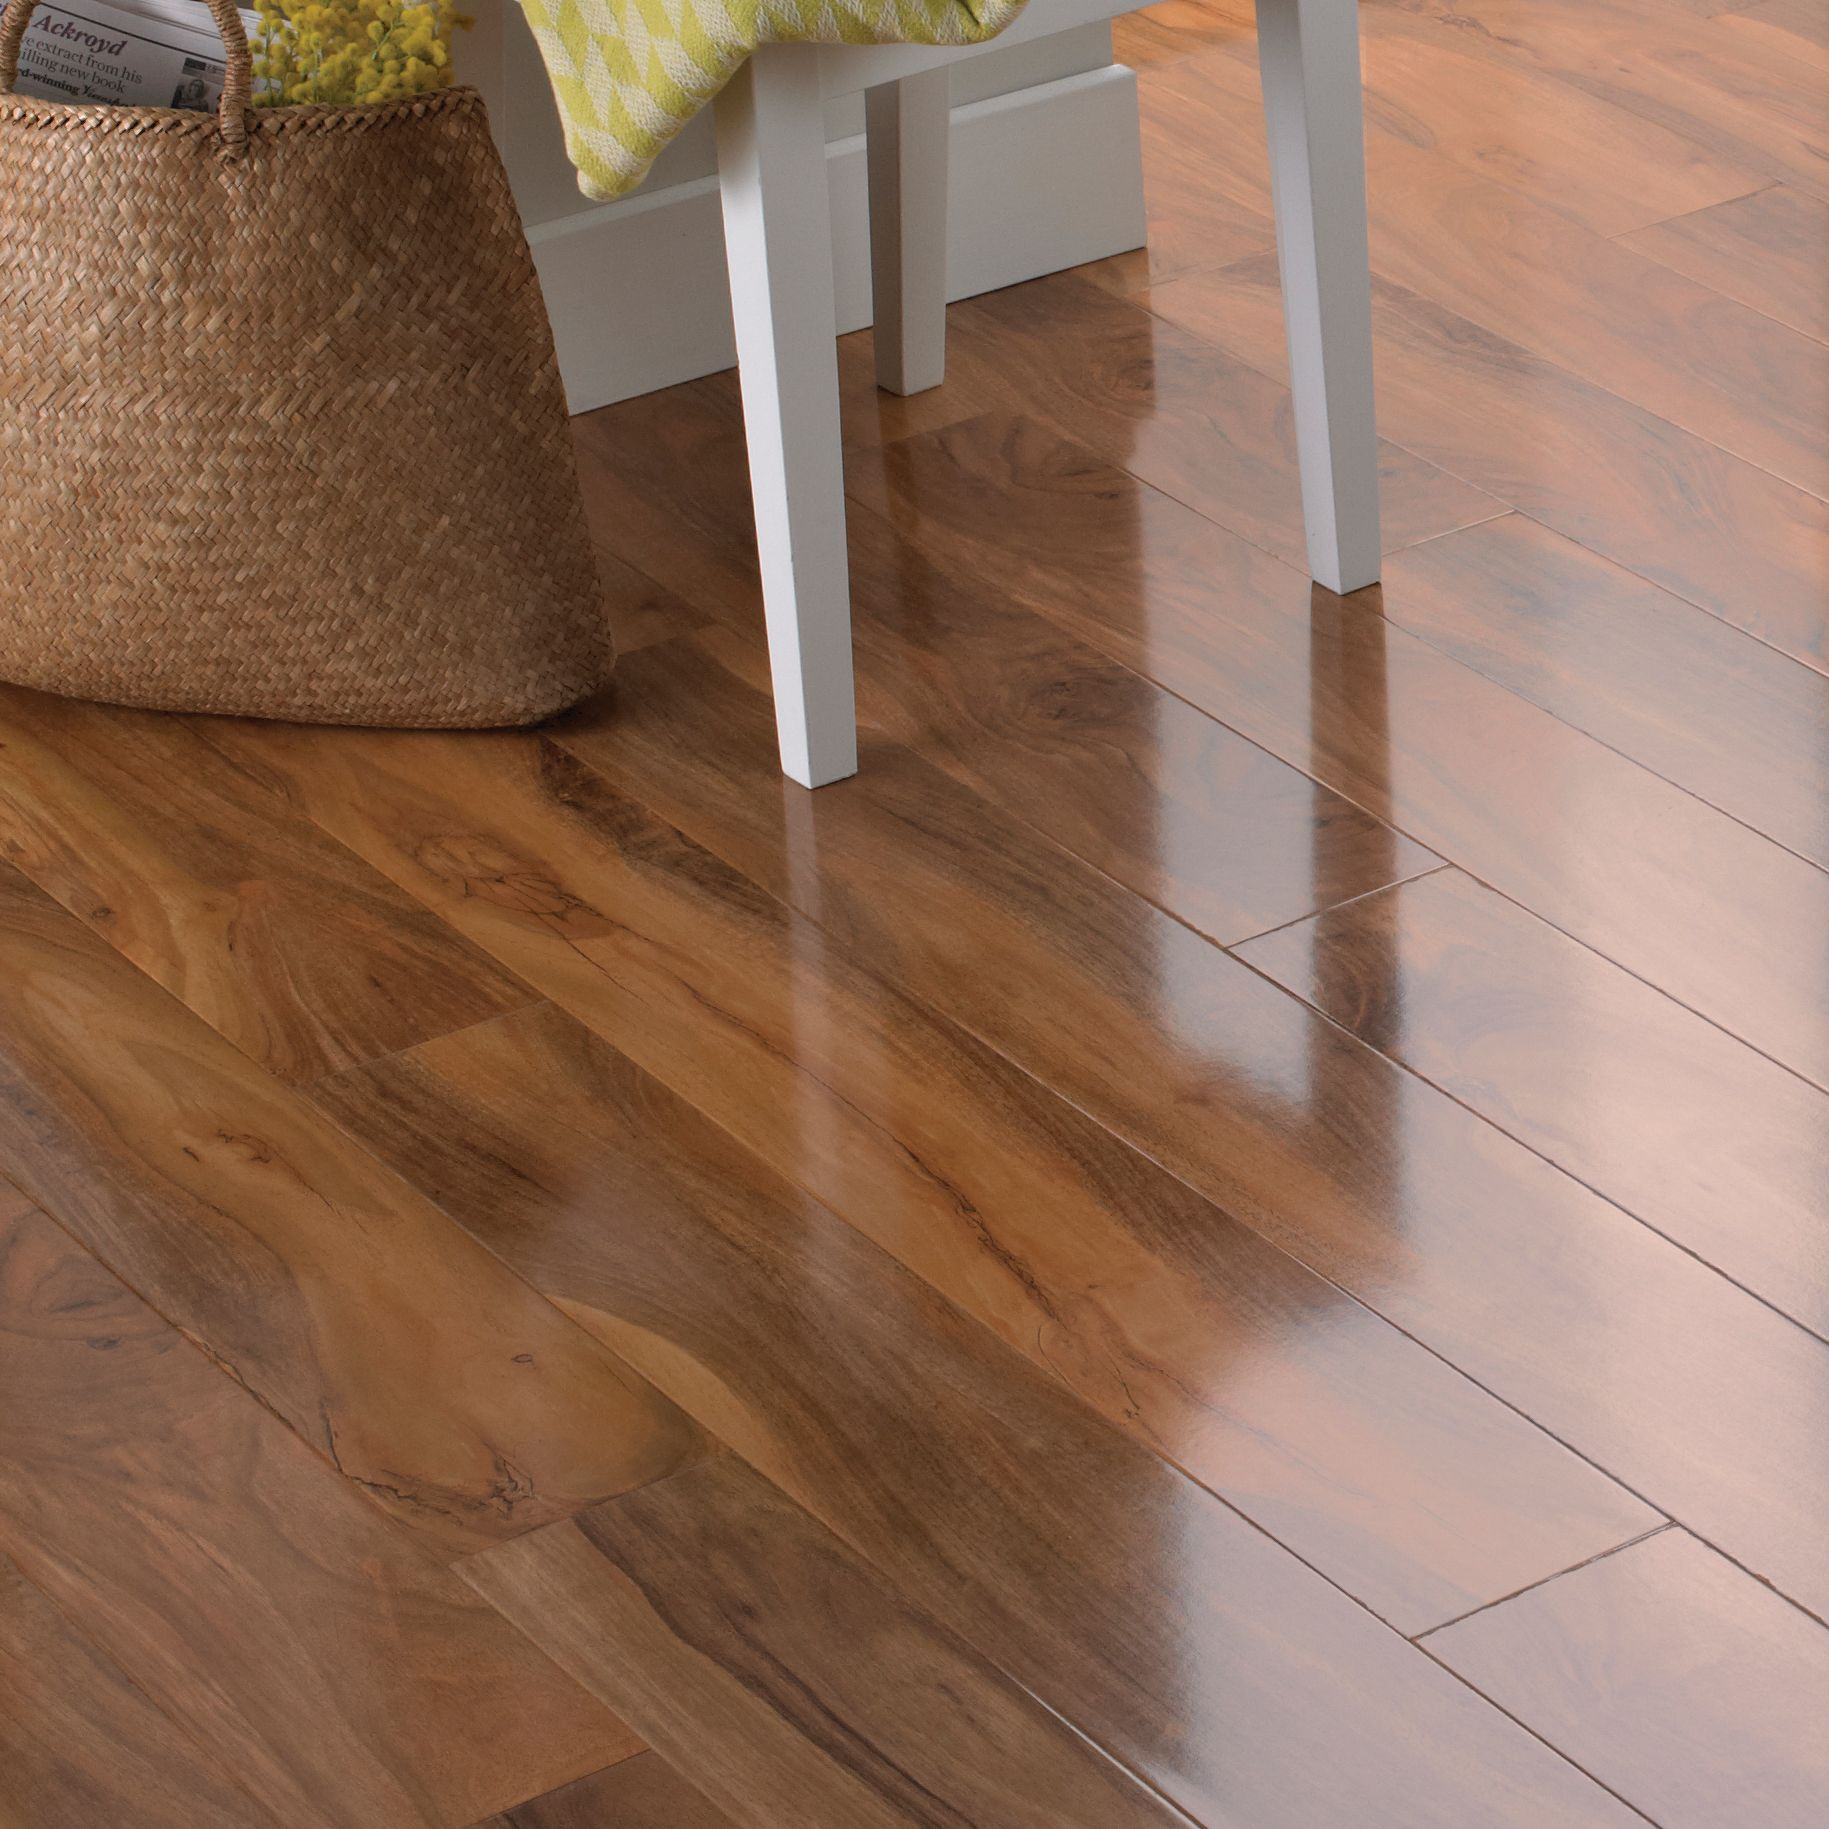 Dolce natural walnut effect laminate flooring m pack for Formica flooring